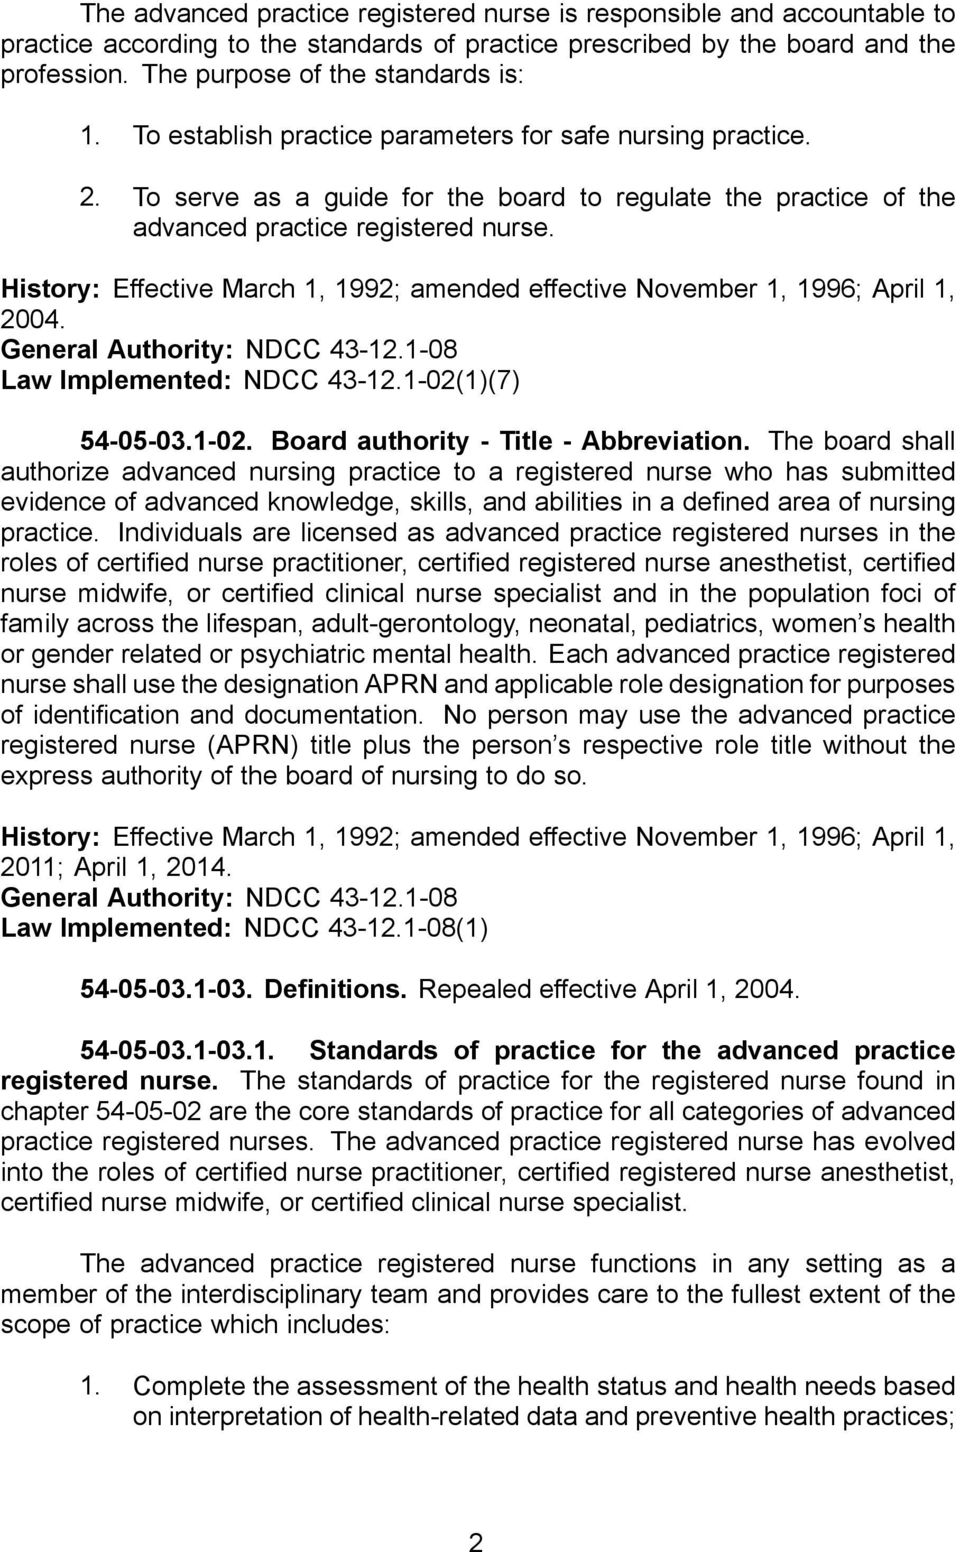 1-02(1)(7) 54-05-03.1-02. Board authority - Title - Abbreviation.